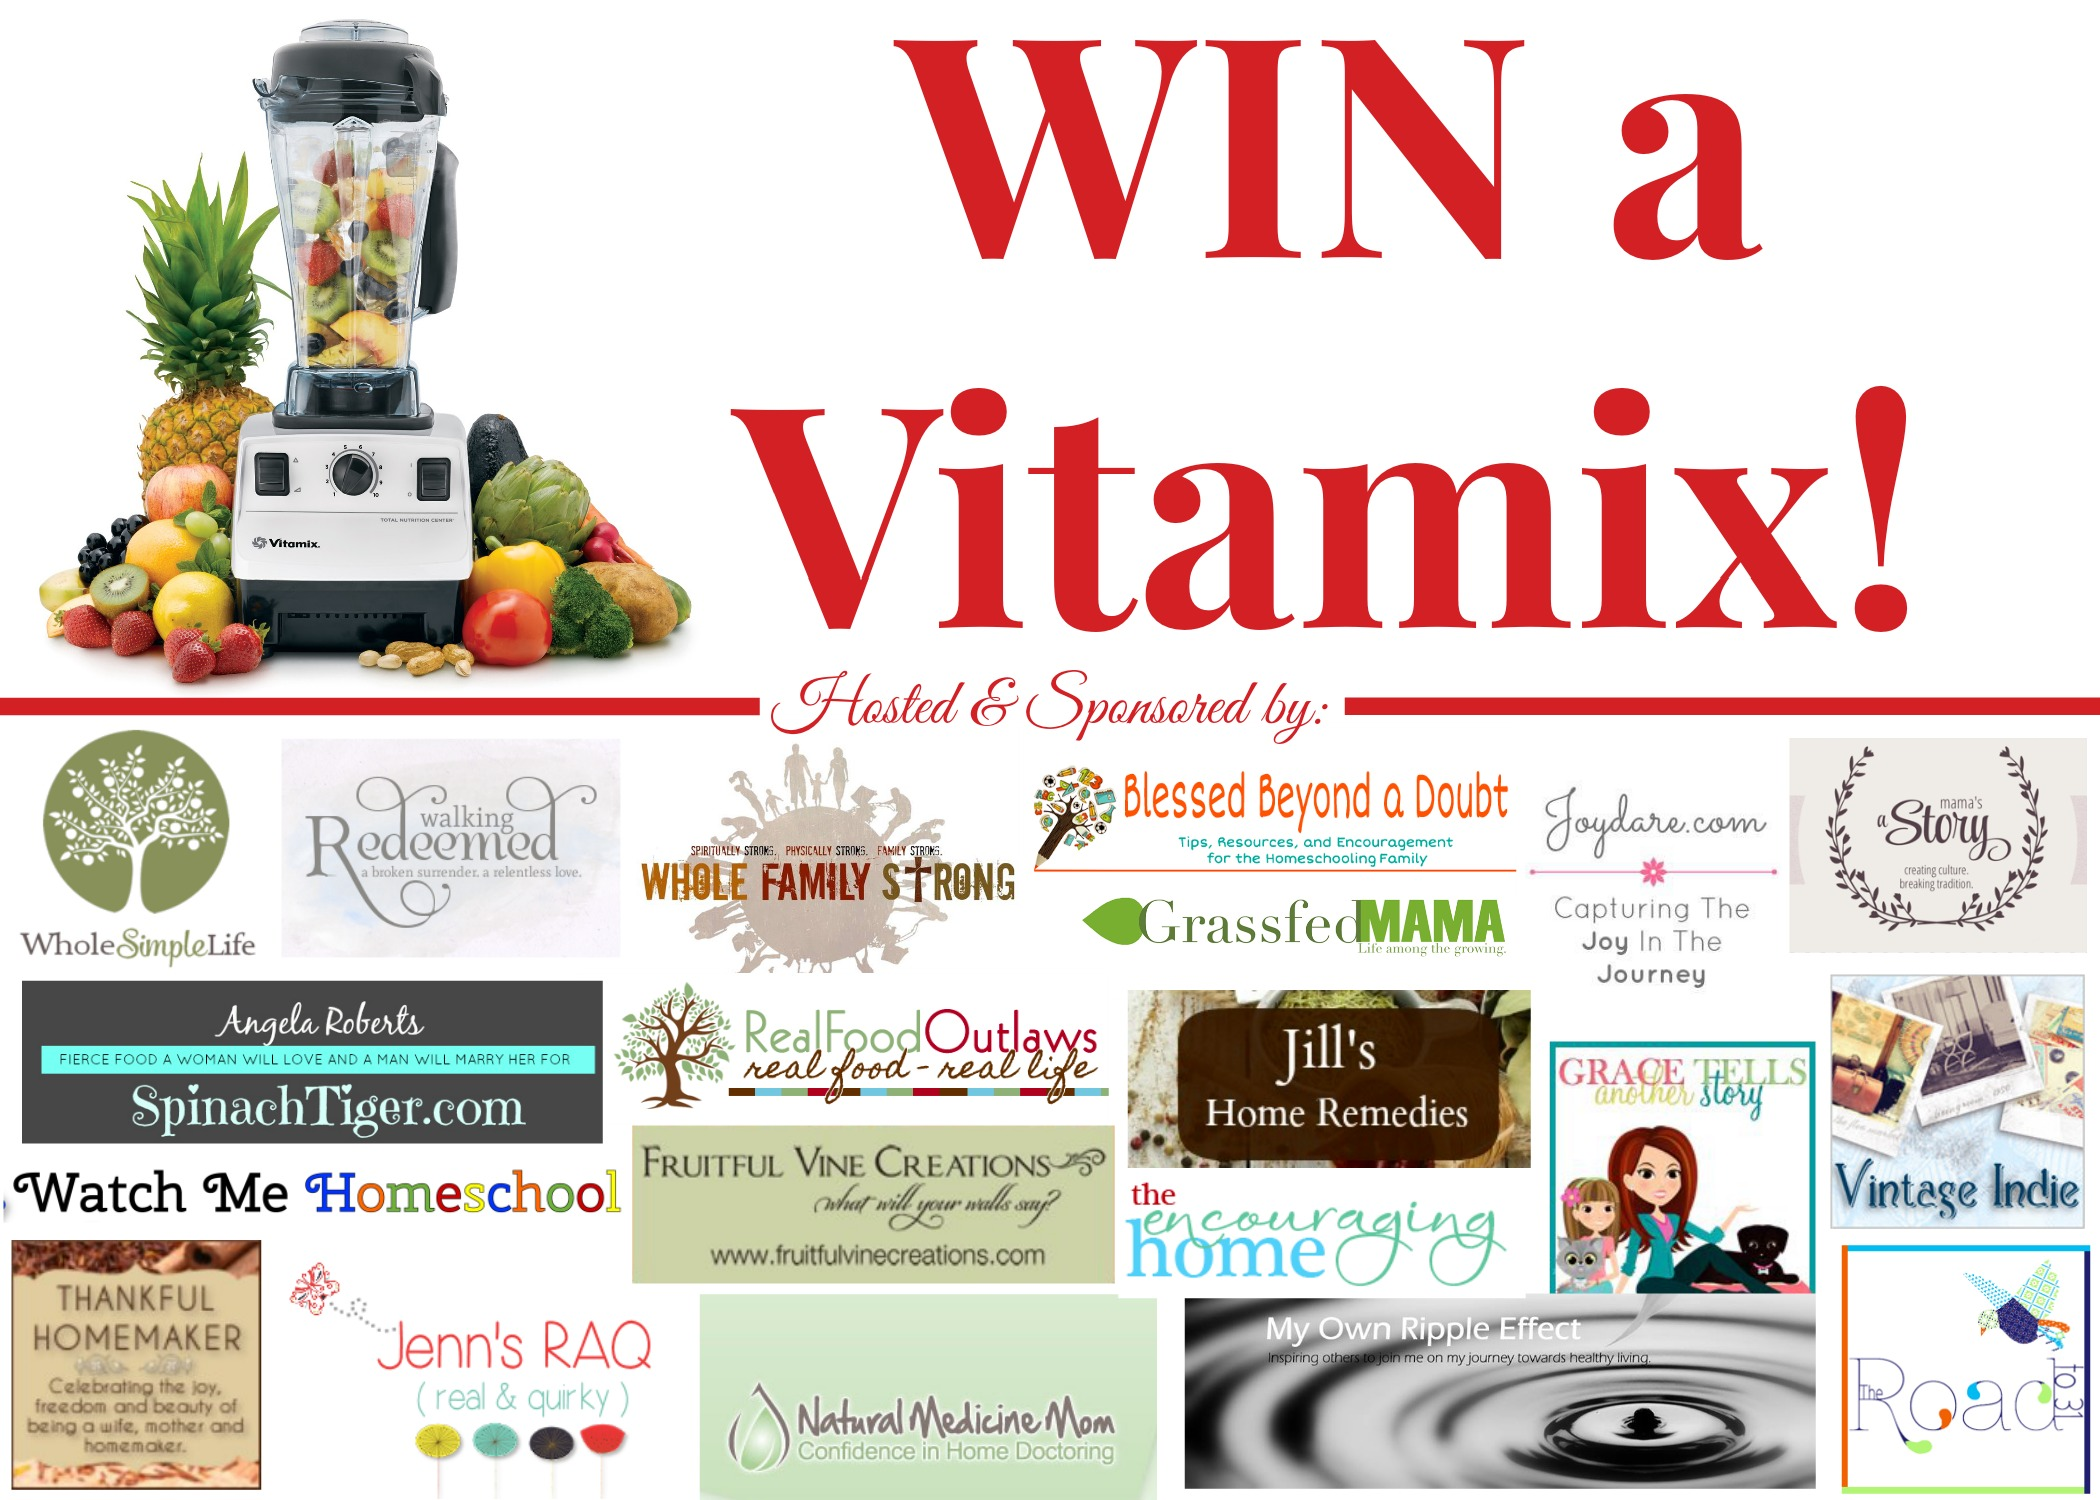 Enter to Win Your Own Vitamix!